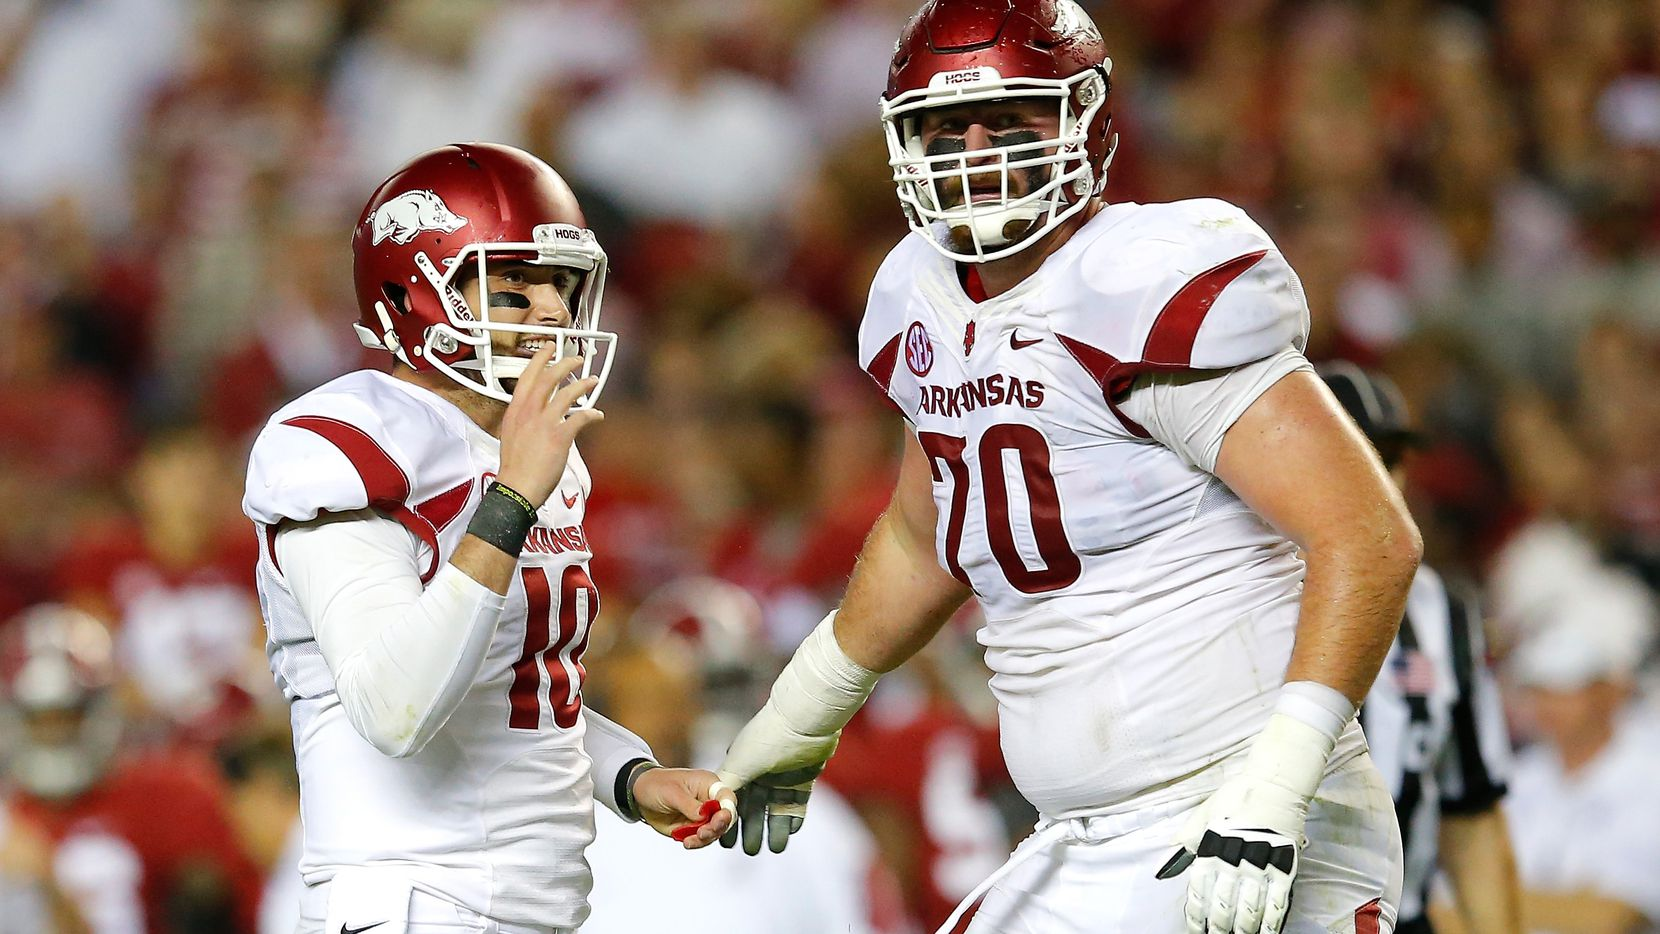 TUSCALOOSA, AL - OCTOBER 10:  Brandon Allen #10 of the Arkansas Razorbacks reacts after passing for a touchdown against the Alabama Crimson Tide with Dan Skipper #70 at Bryant-Denny Stadium on October 10, 2015 in Tuscaloosa, Alabama.  (Photo by Kevin C. Cox/Getty Images)